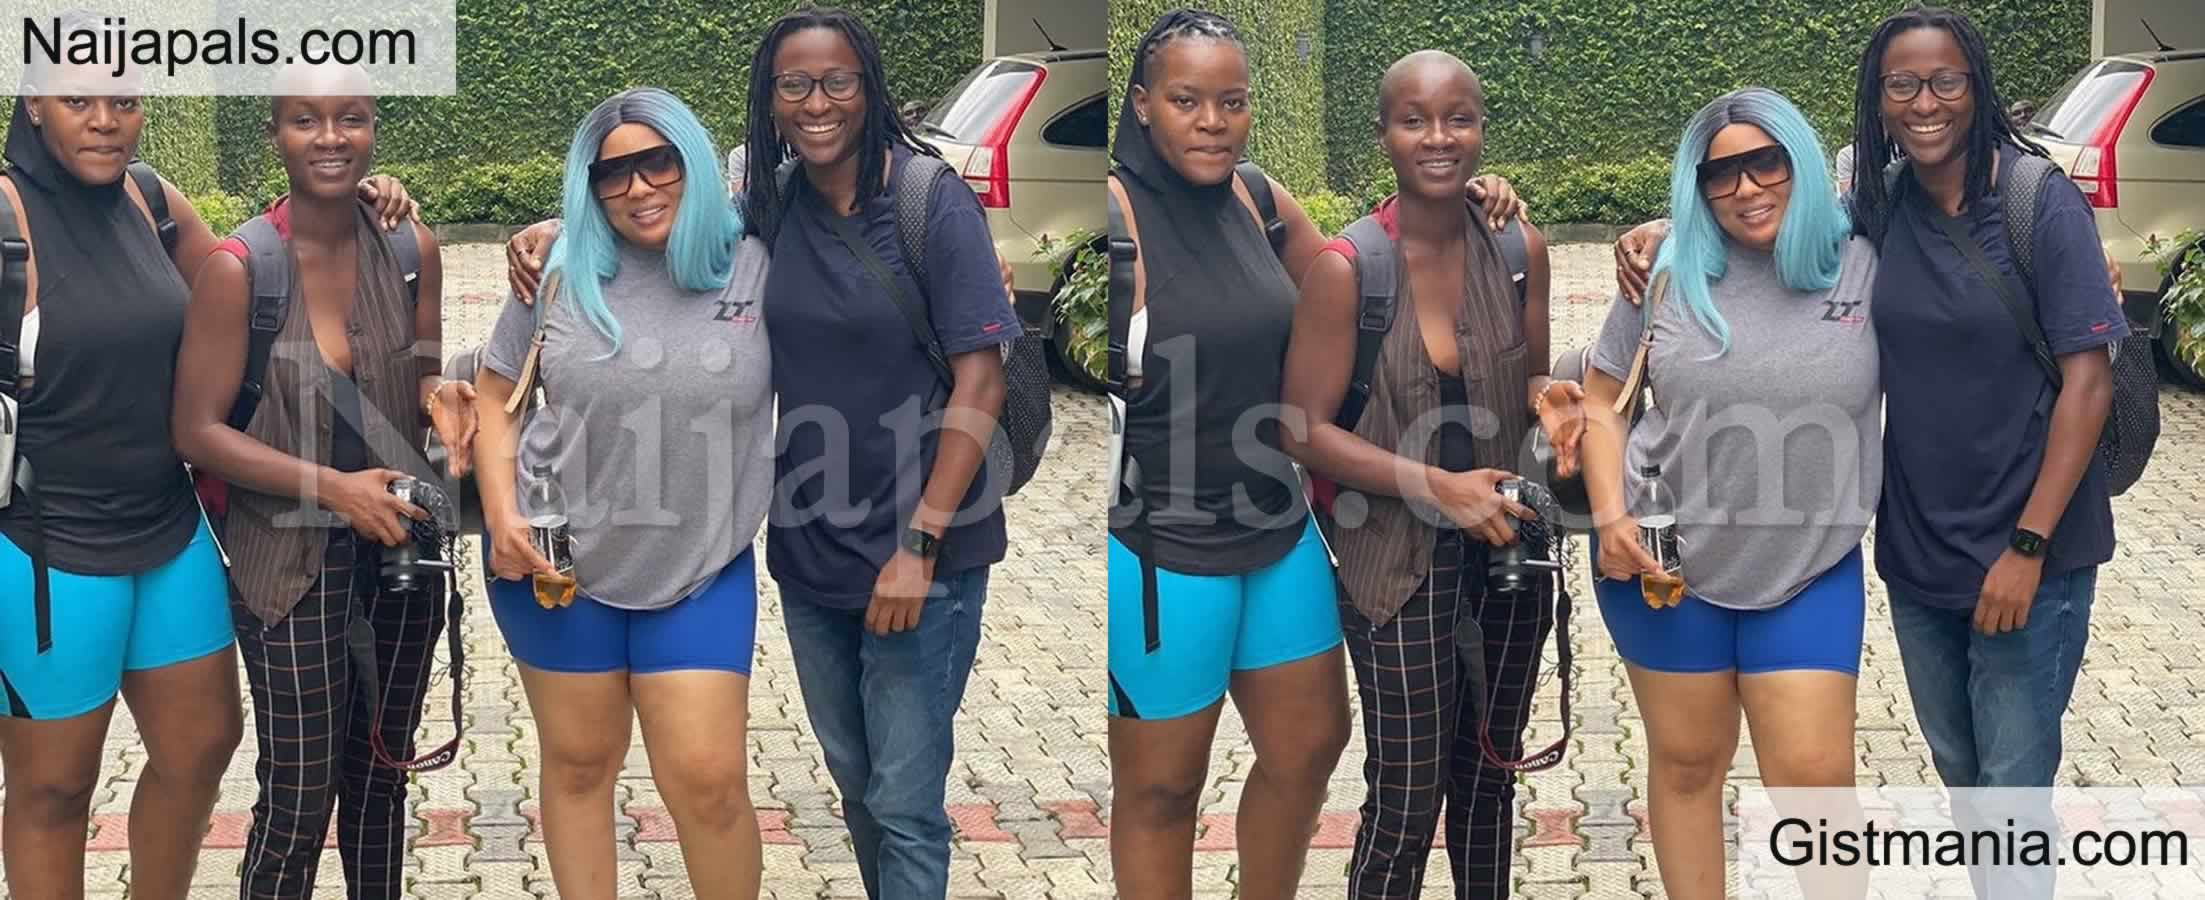 <img alt='.' class='lazyload' data-src='https://img.gistmania.com/emot/photo.png' /> PHOTO - <b>Bold Nigerian Lesbian Couples Share Their Loved-Up Photo On Social Media</b>